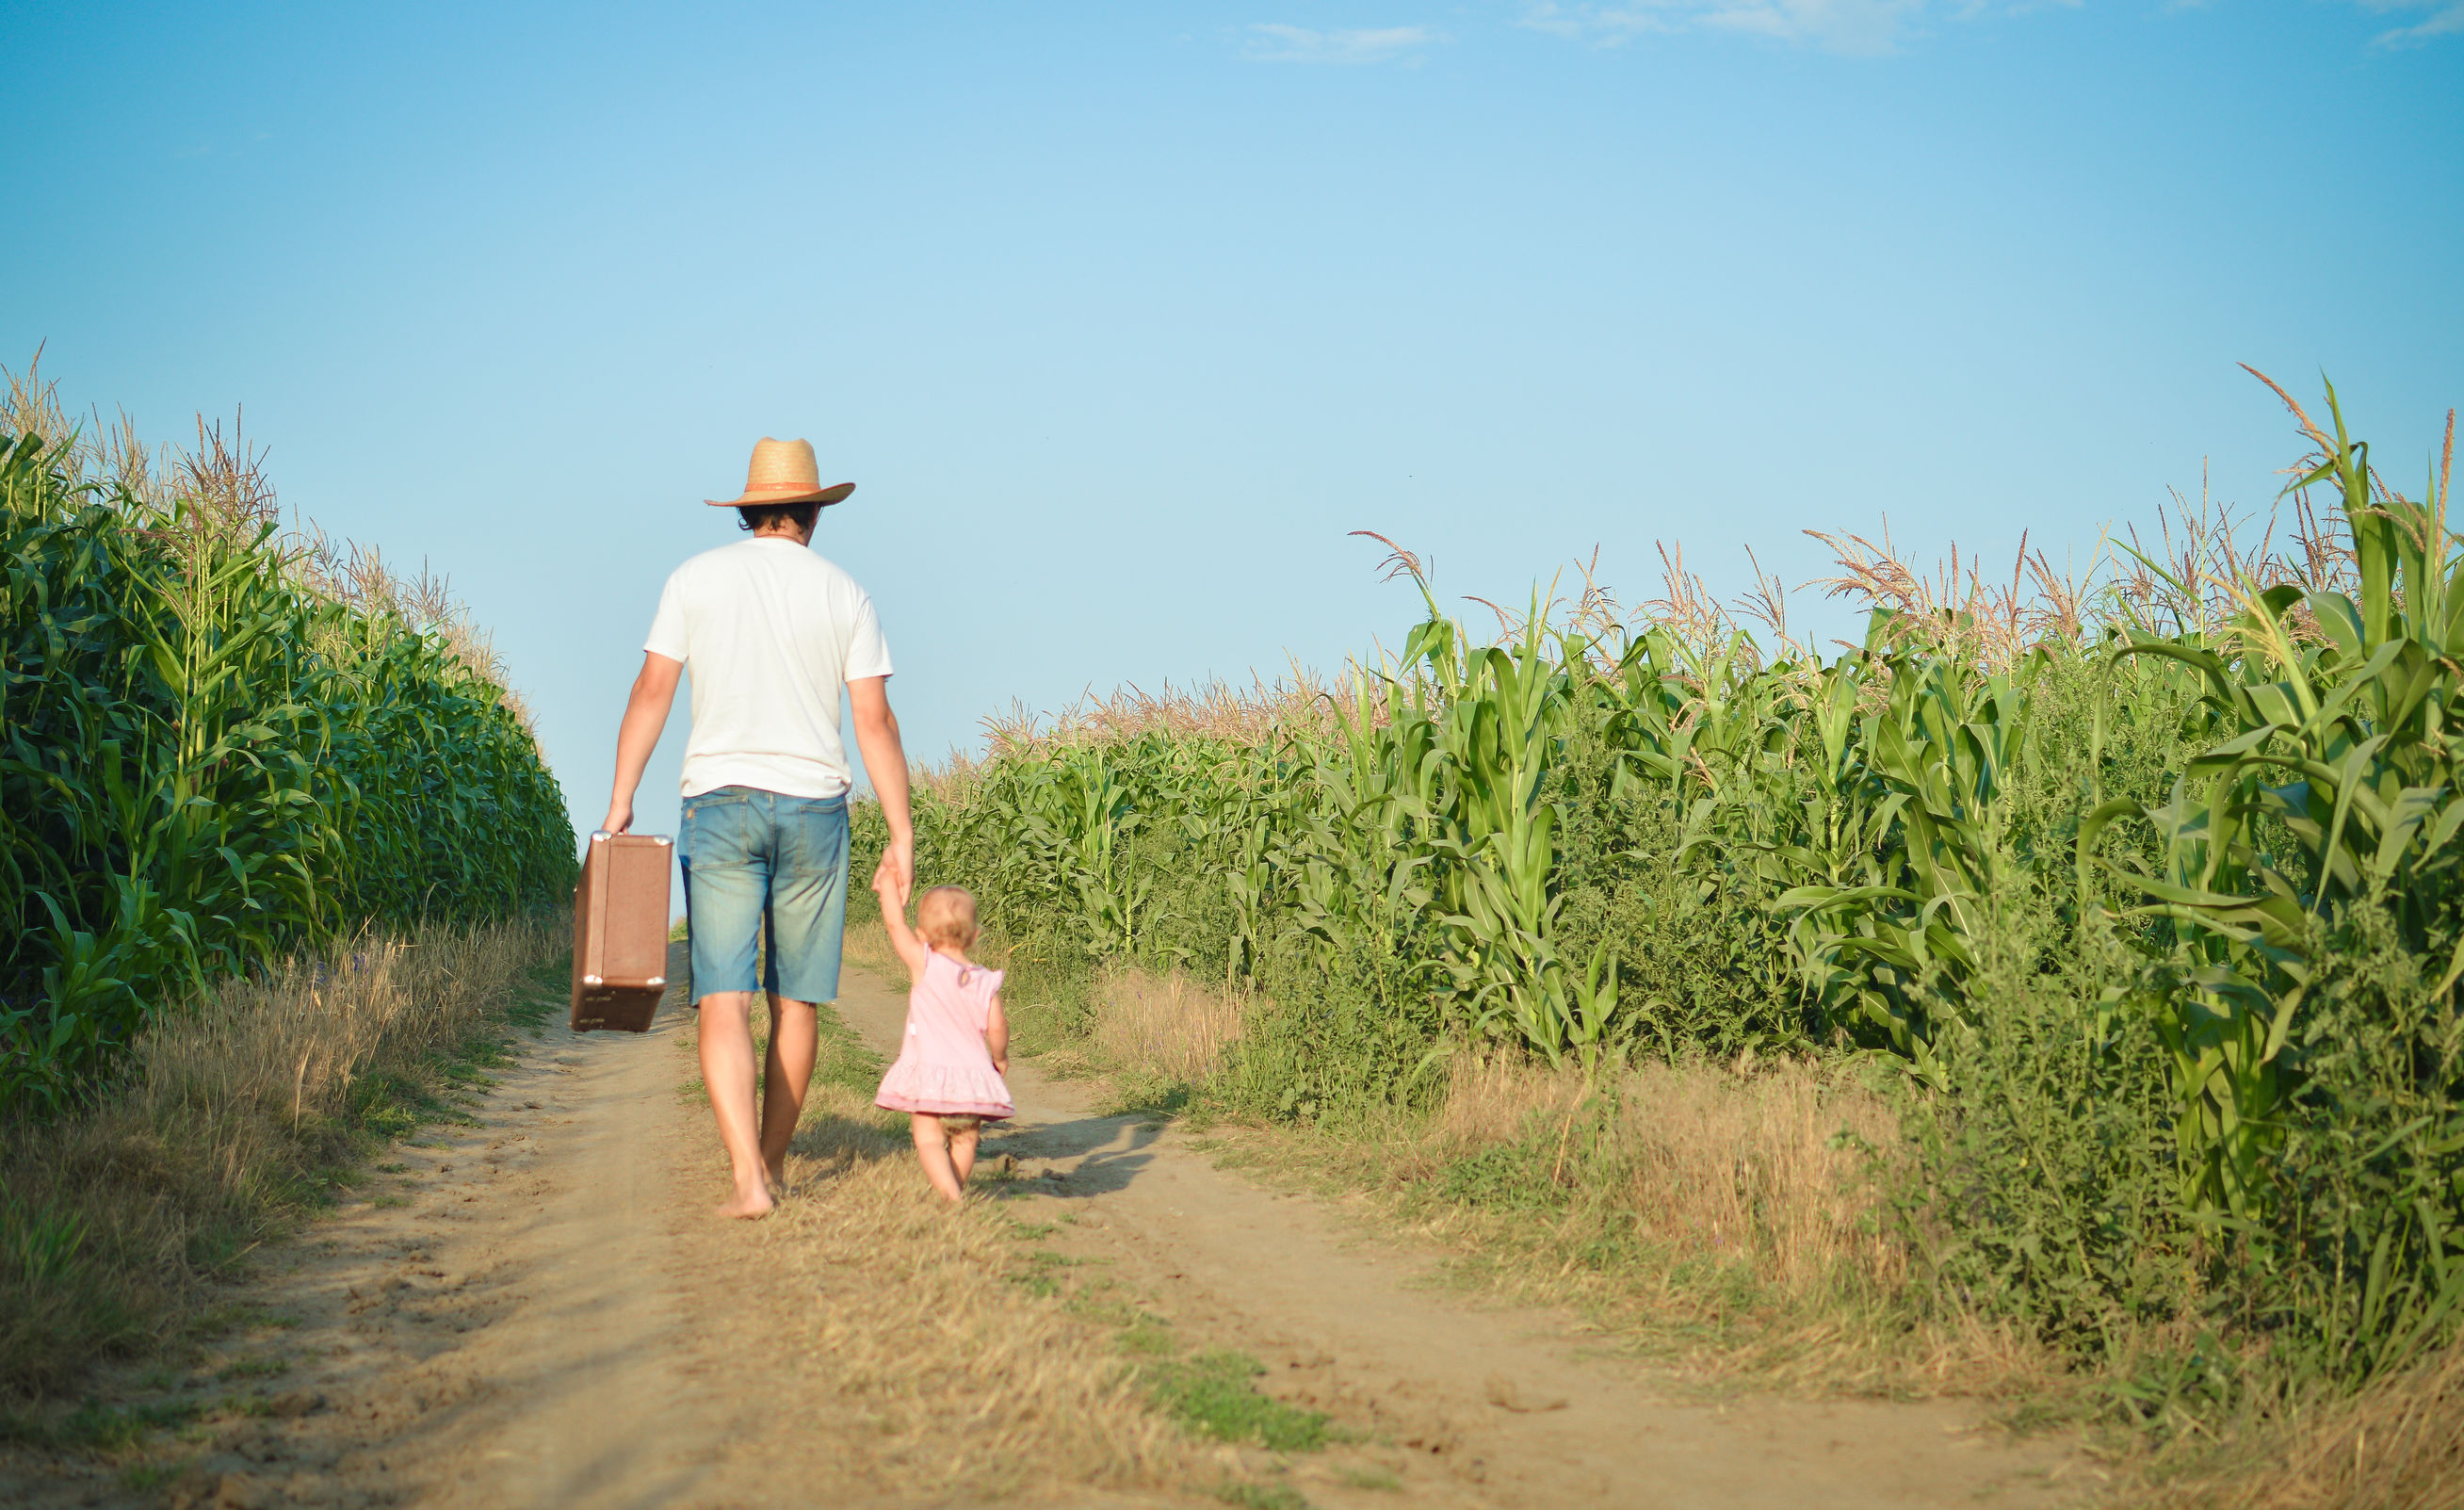 44653077 - man and babygirl walking away on road between corn field over blue sky outdoors background. backview of father carrying suitcase with daughter.